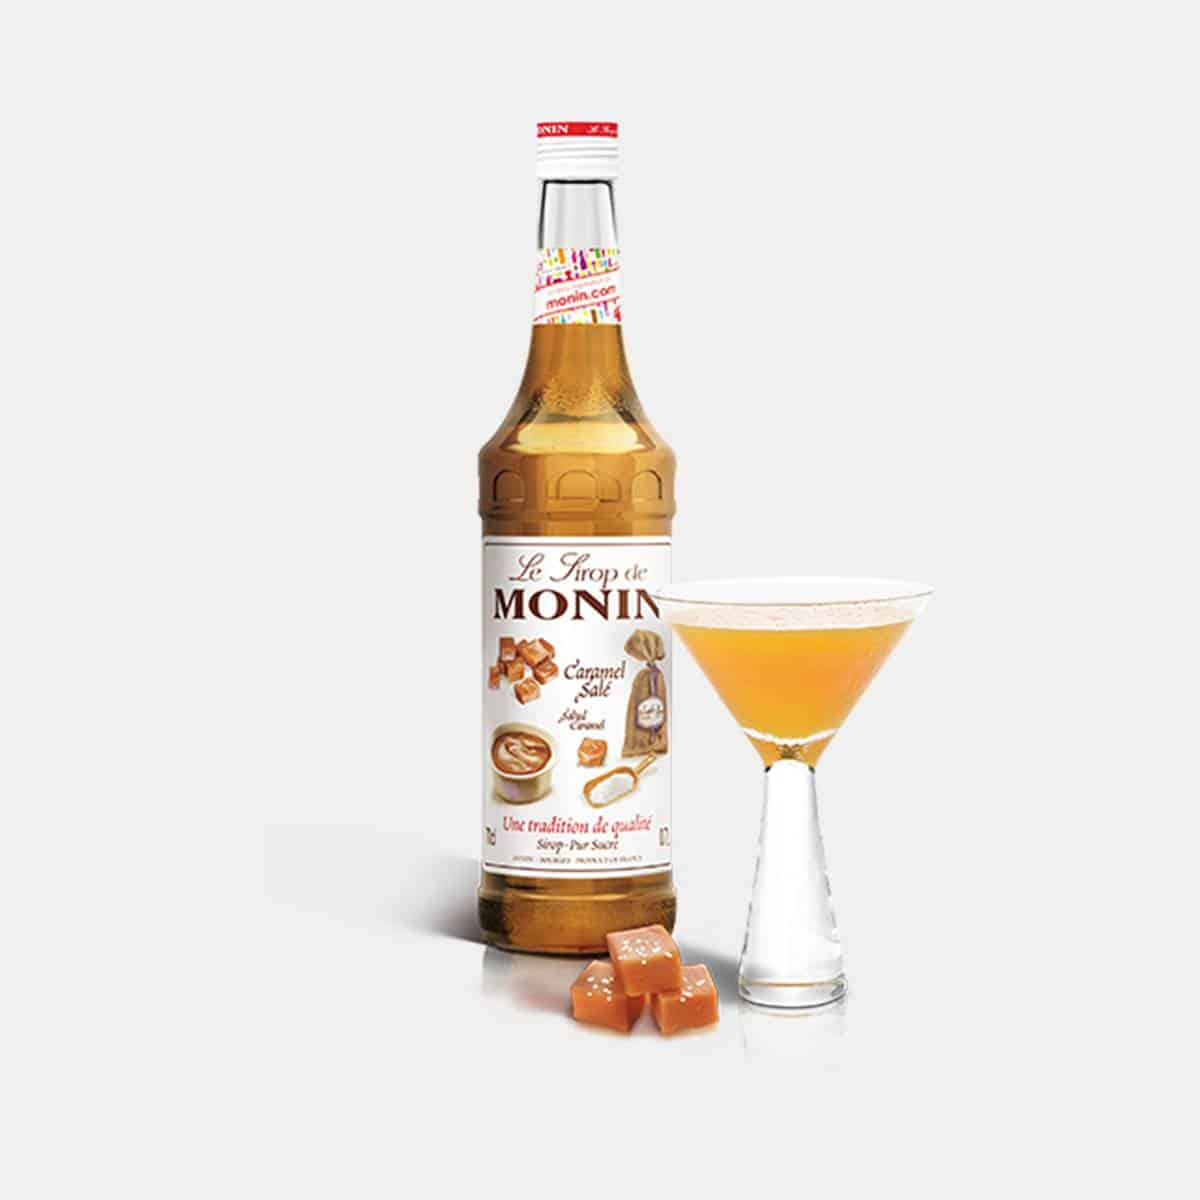 Monin 700ml Salted Caramel Syrup Glass Bottle with Cocktail Drink